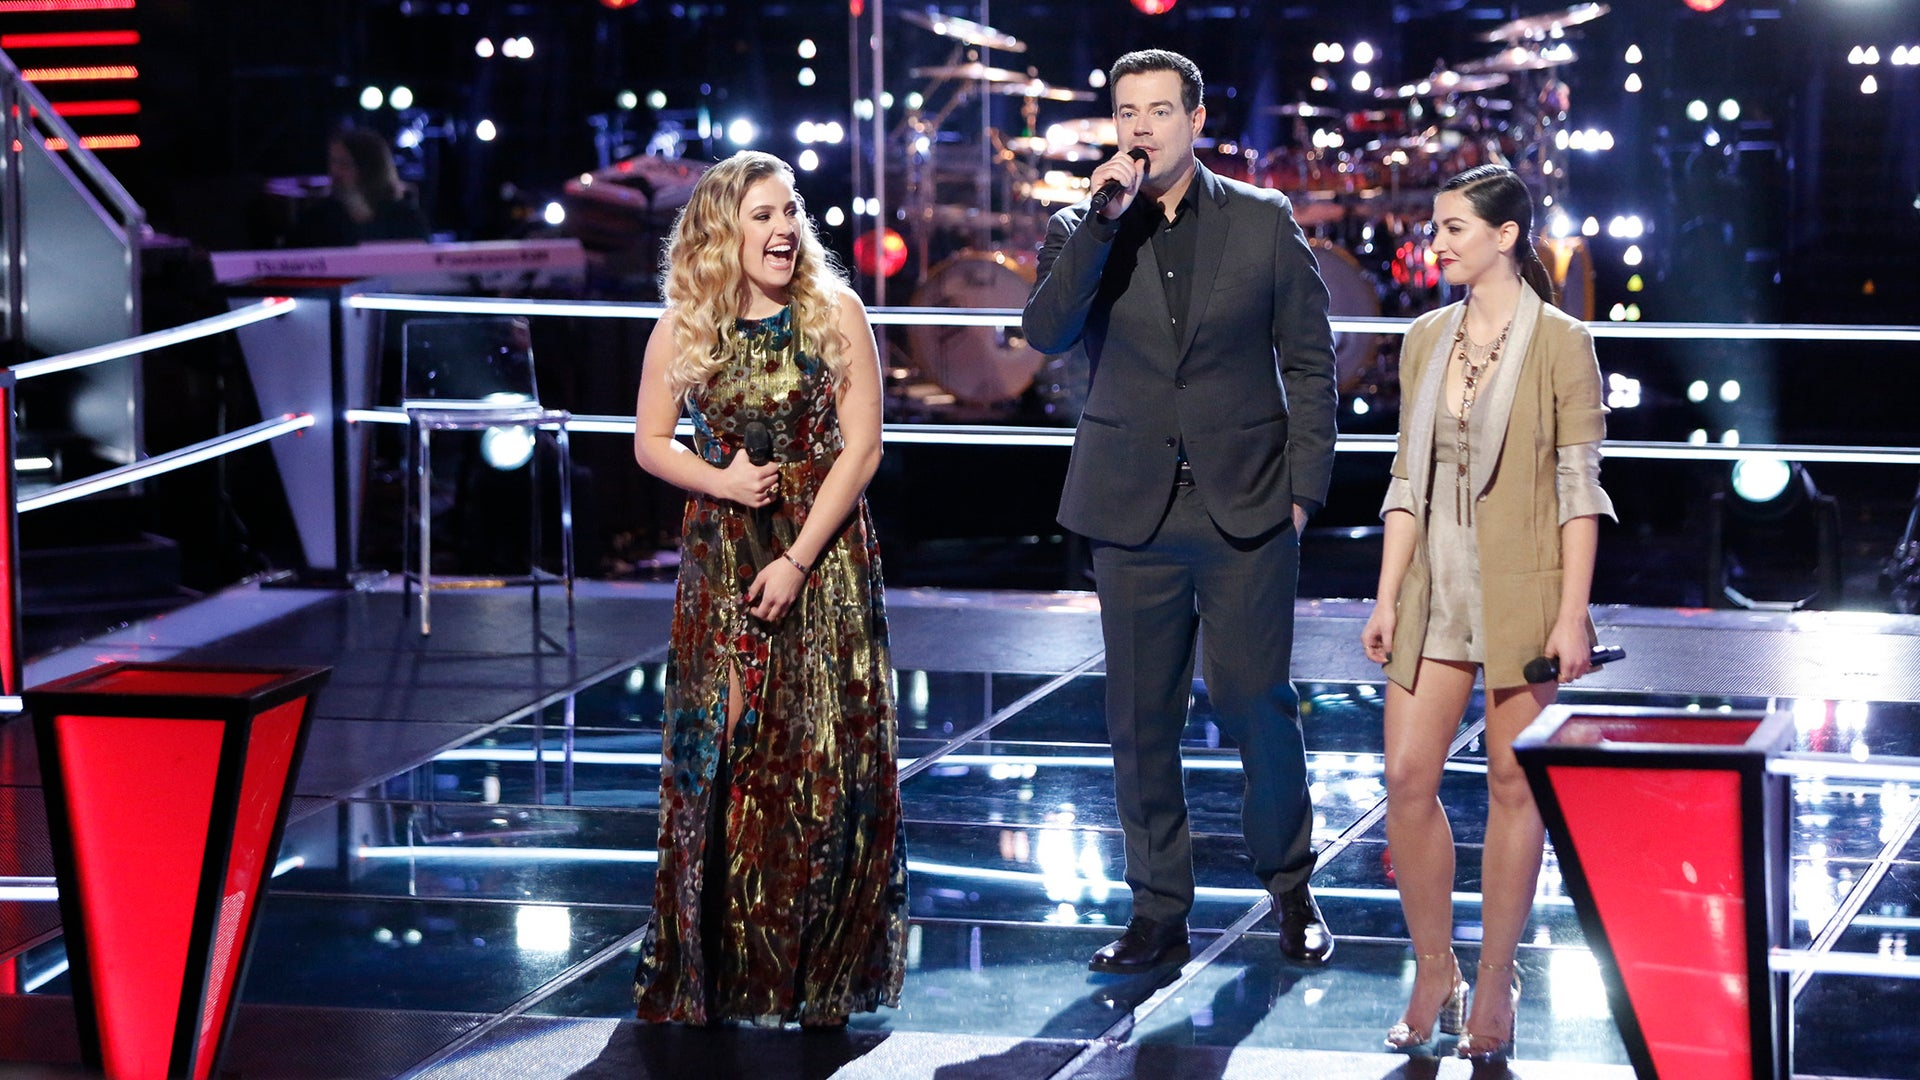 The Voice - Ashley Levin, Carson Daly, Lilly Passero